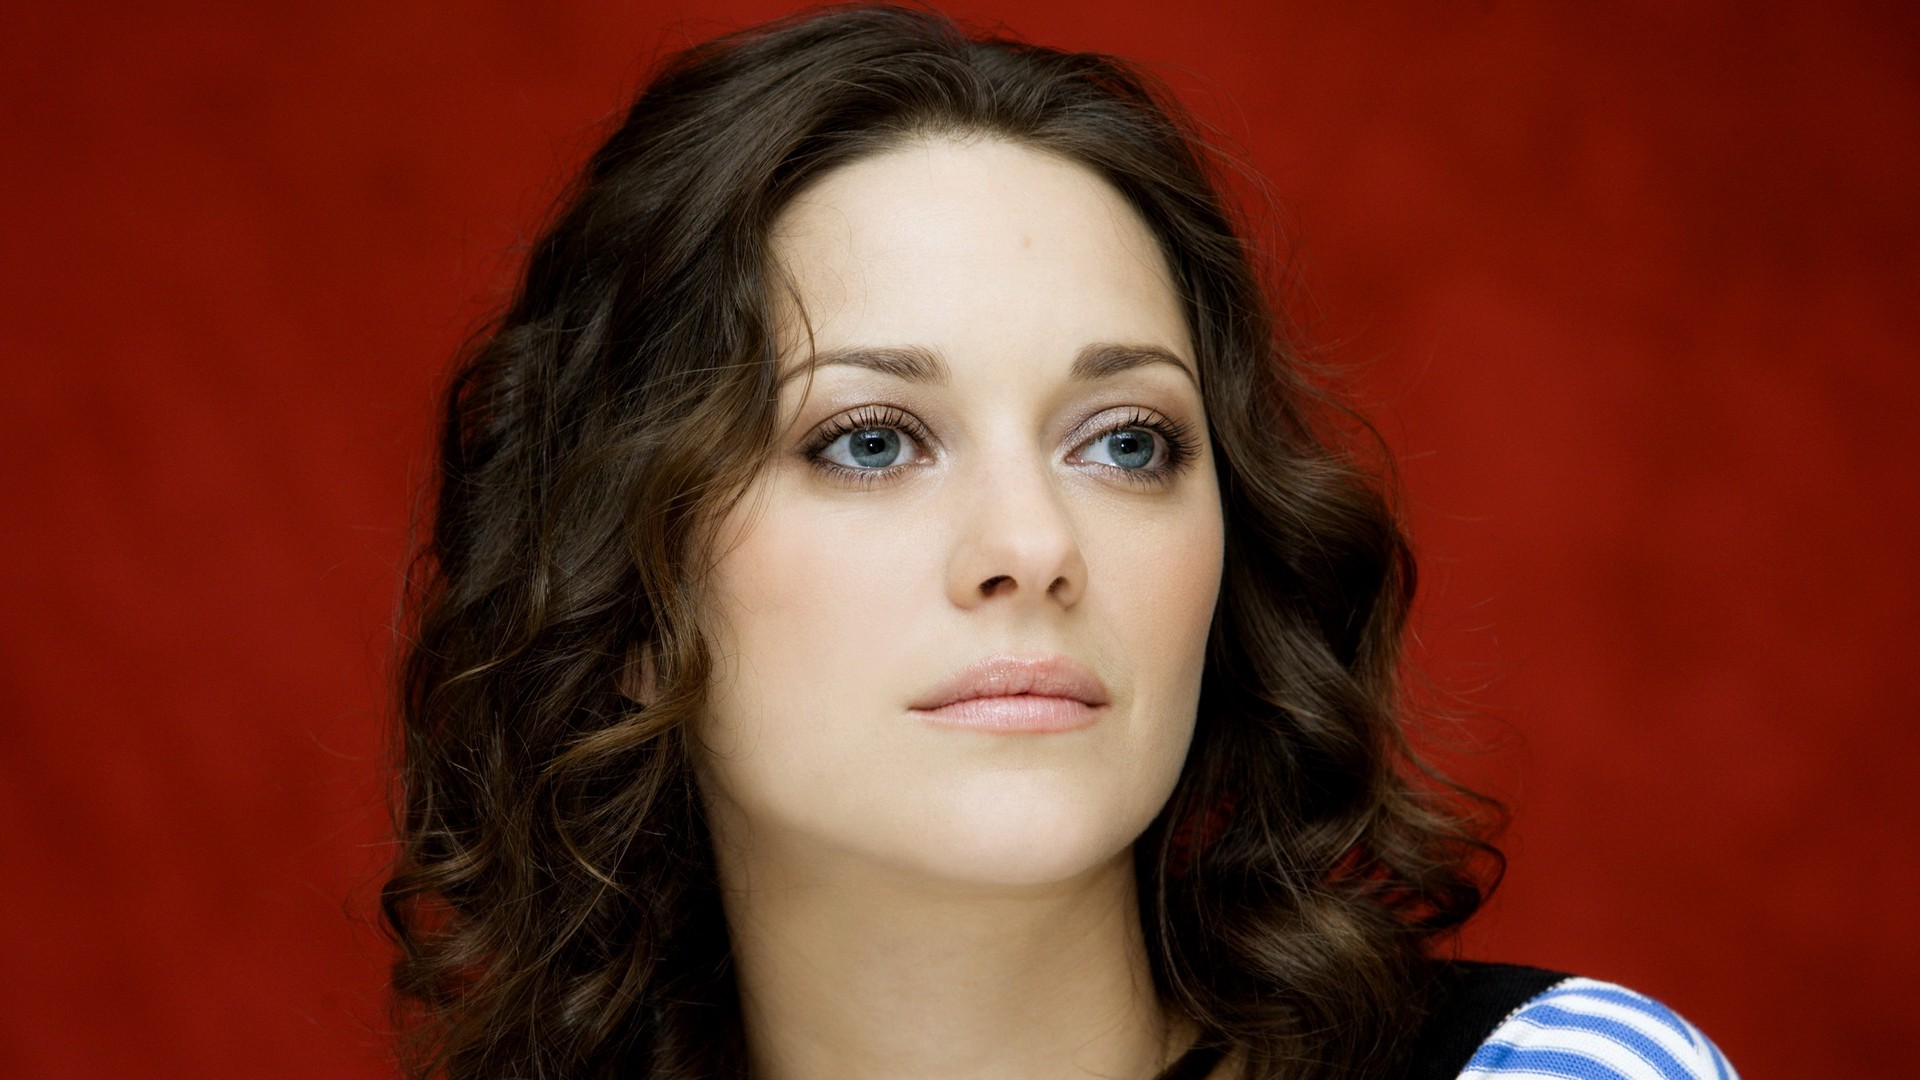 marion-cotillard-make-up-wallpaper-wpc9007442